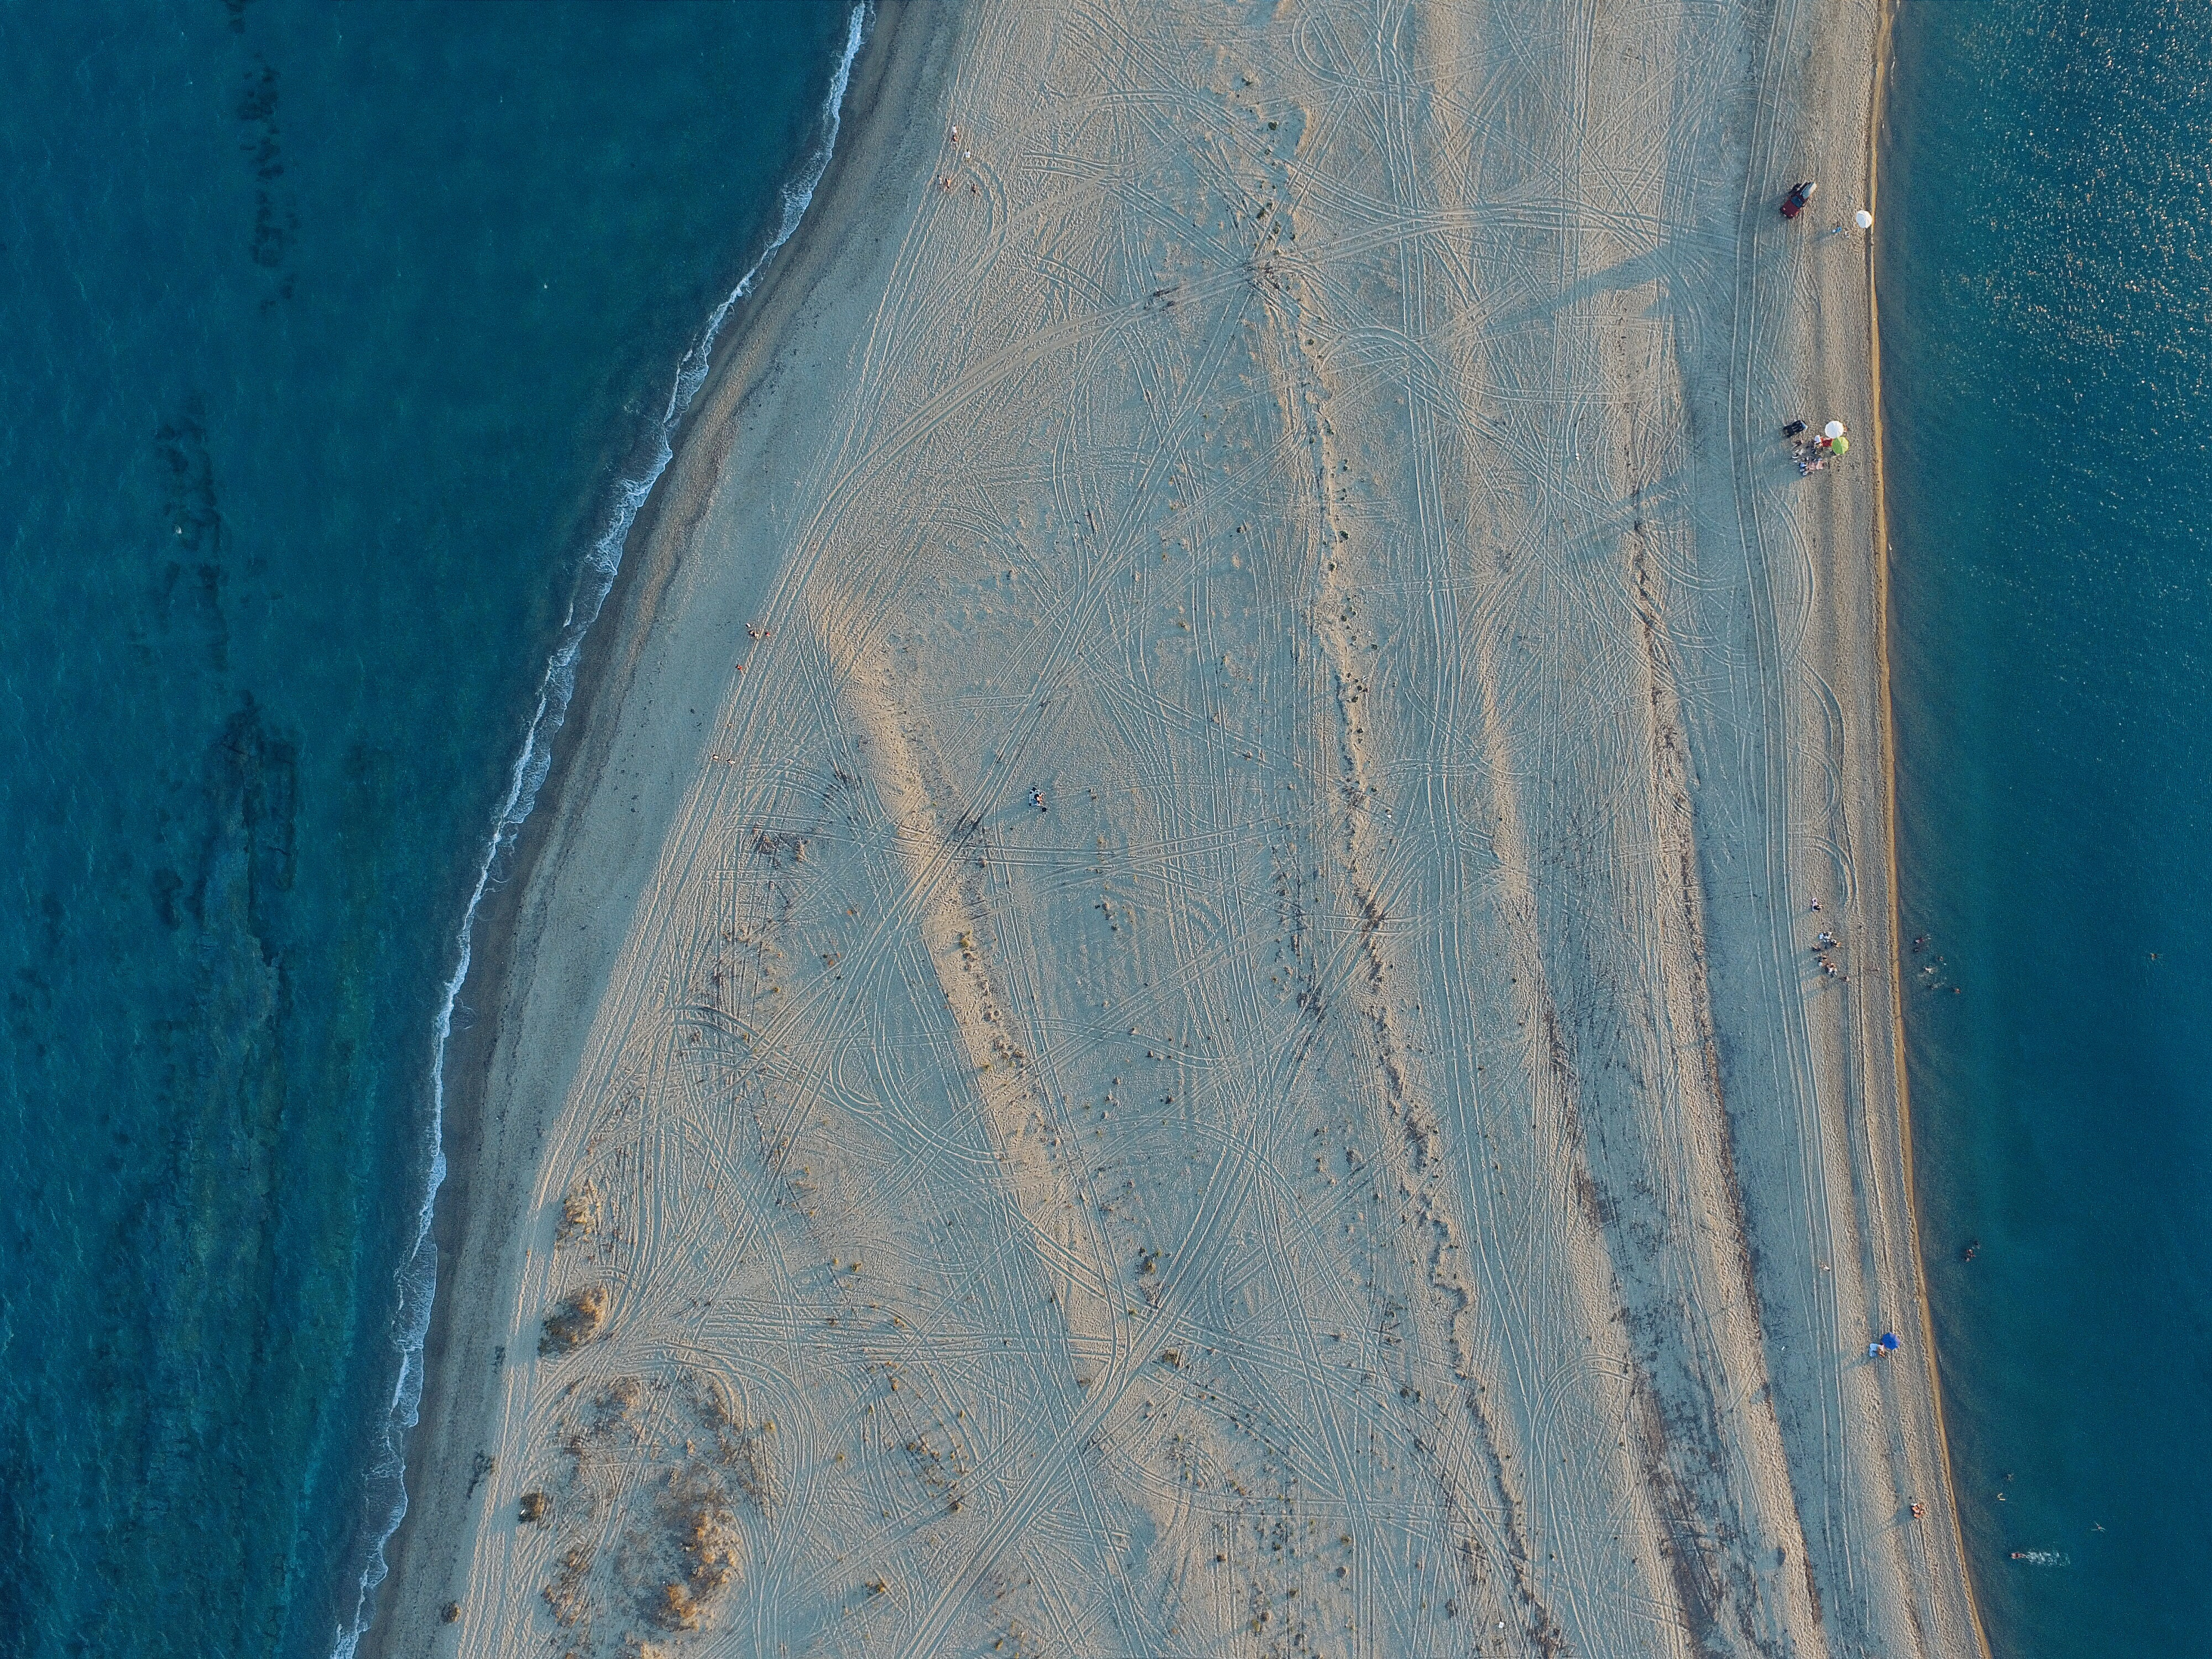 aerial view of white sand surrounded by body of water